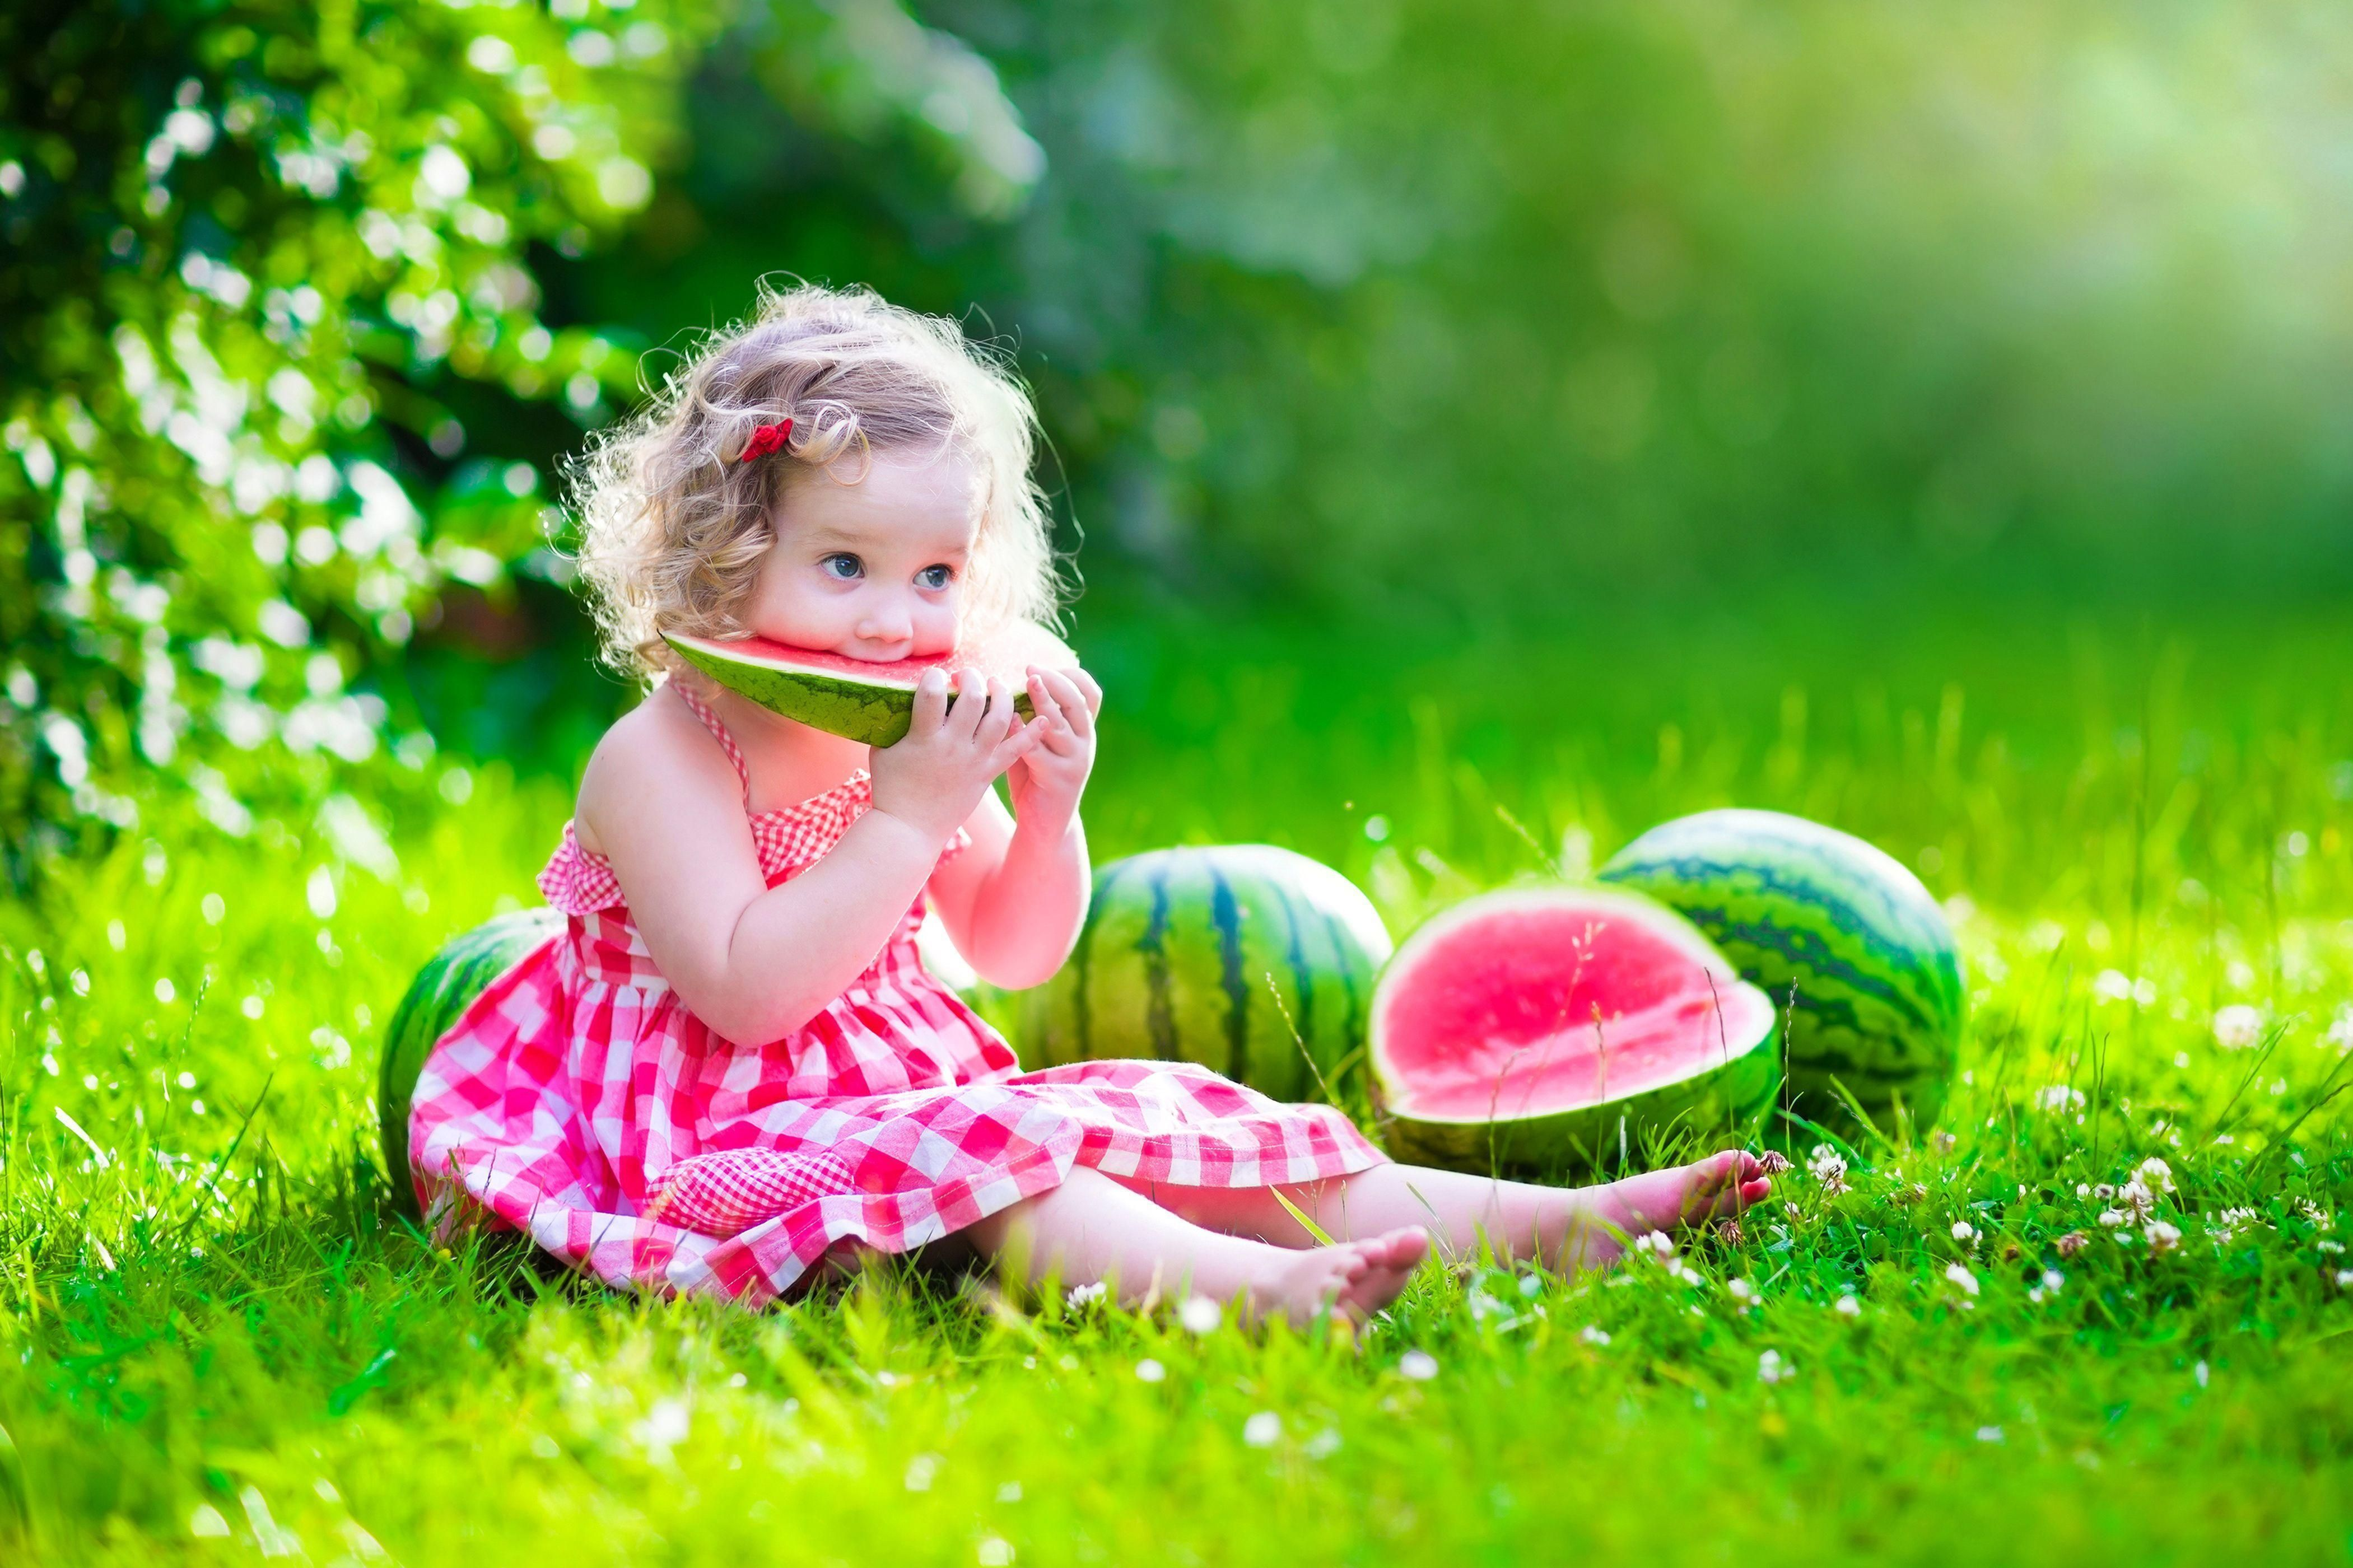 Cute Baby Girl Wallpapers Wallpaper Cave Cute Baby Girl Wallpaper Baby Girl Wallpaper Cute Baby Pictures